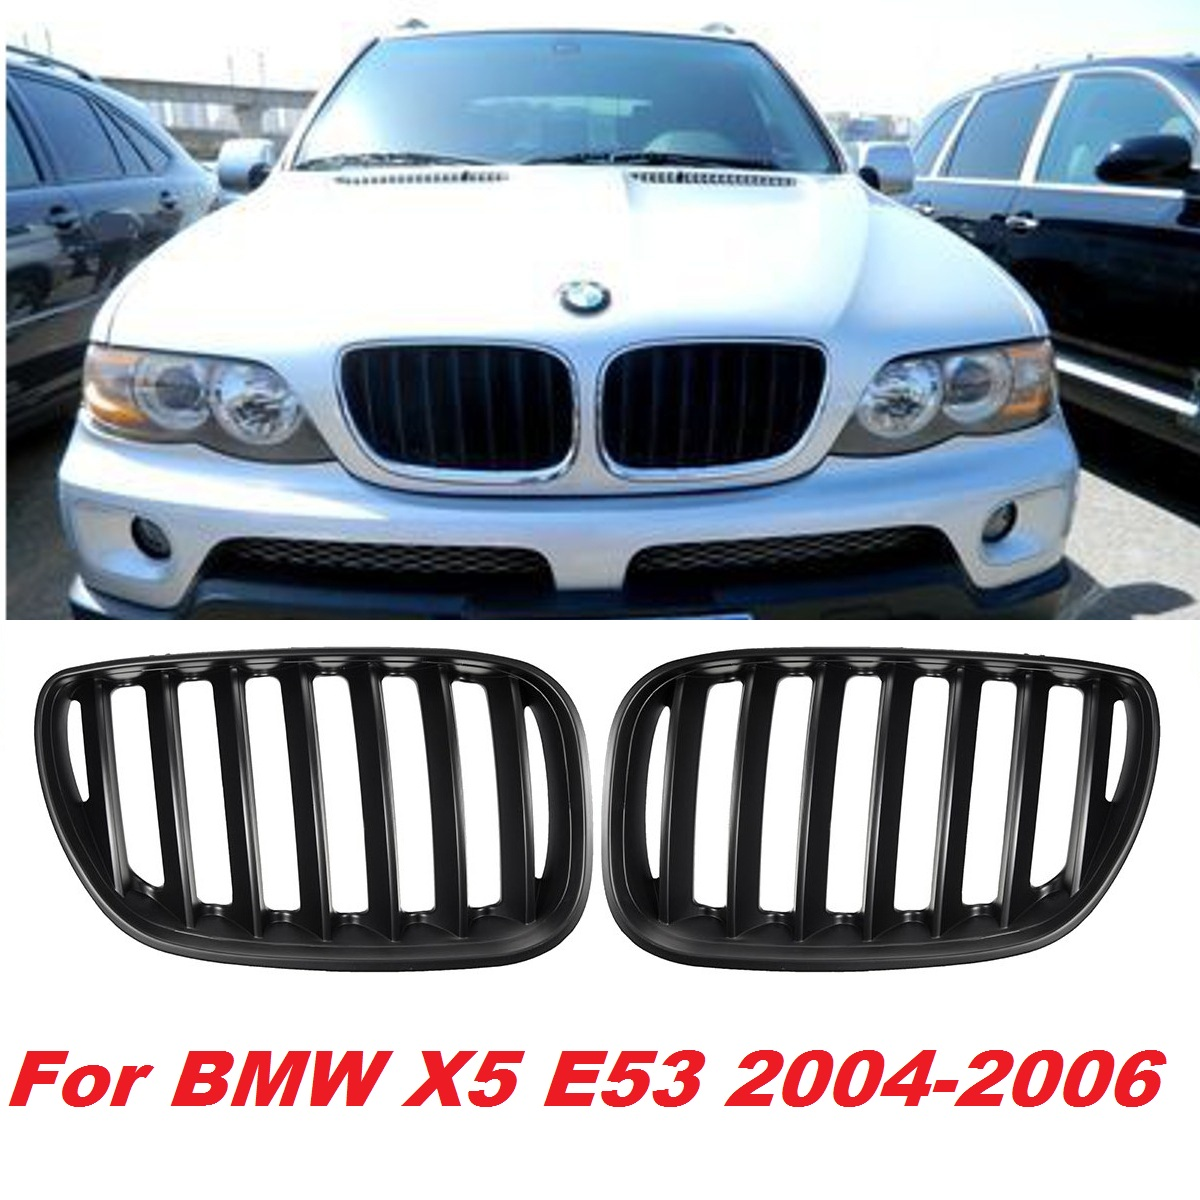 Pair Matte Black Chrome Front Hood Kidney Sport Grills Grille for BMW X5 E53 2004-2006  Front Bumper Grille Car StylingPair Matte Black Chrome Front Hood Kidney Sport Grills Grille for BMW X5 E53 2004-2006  Front Bumper Grille Car Styling